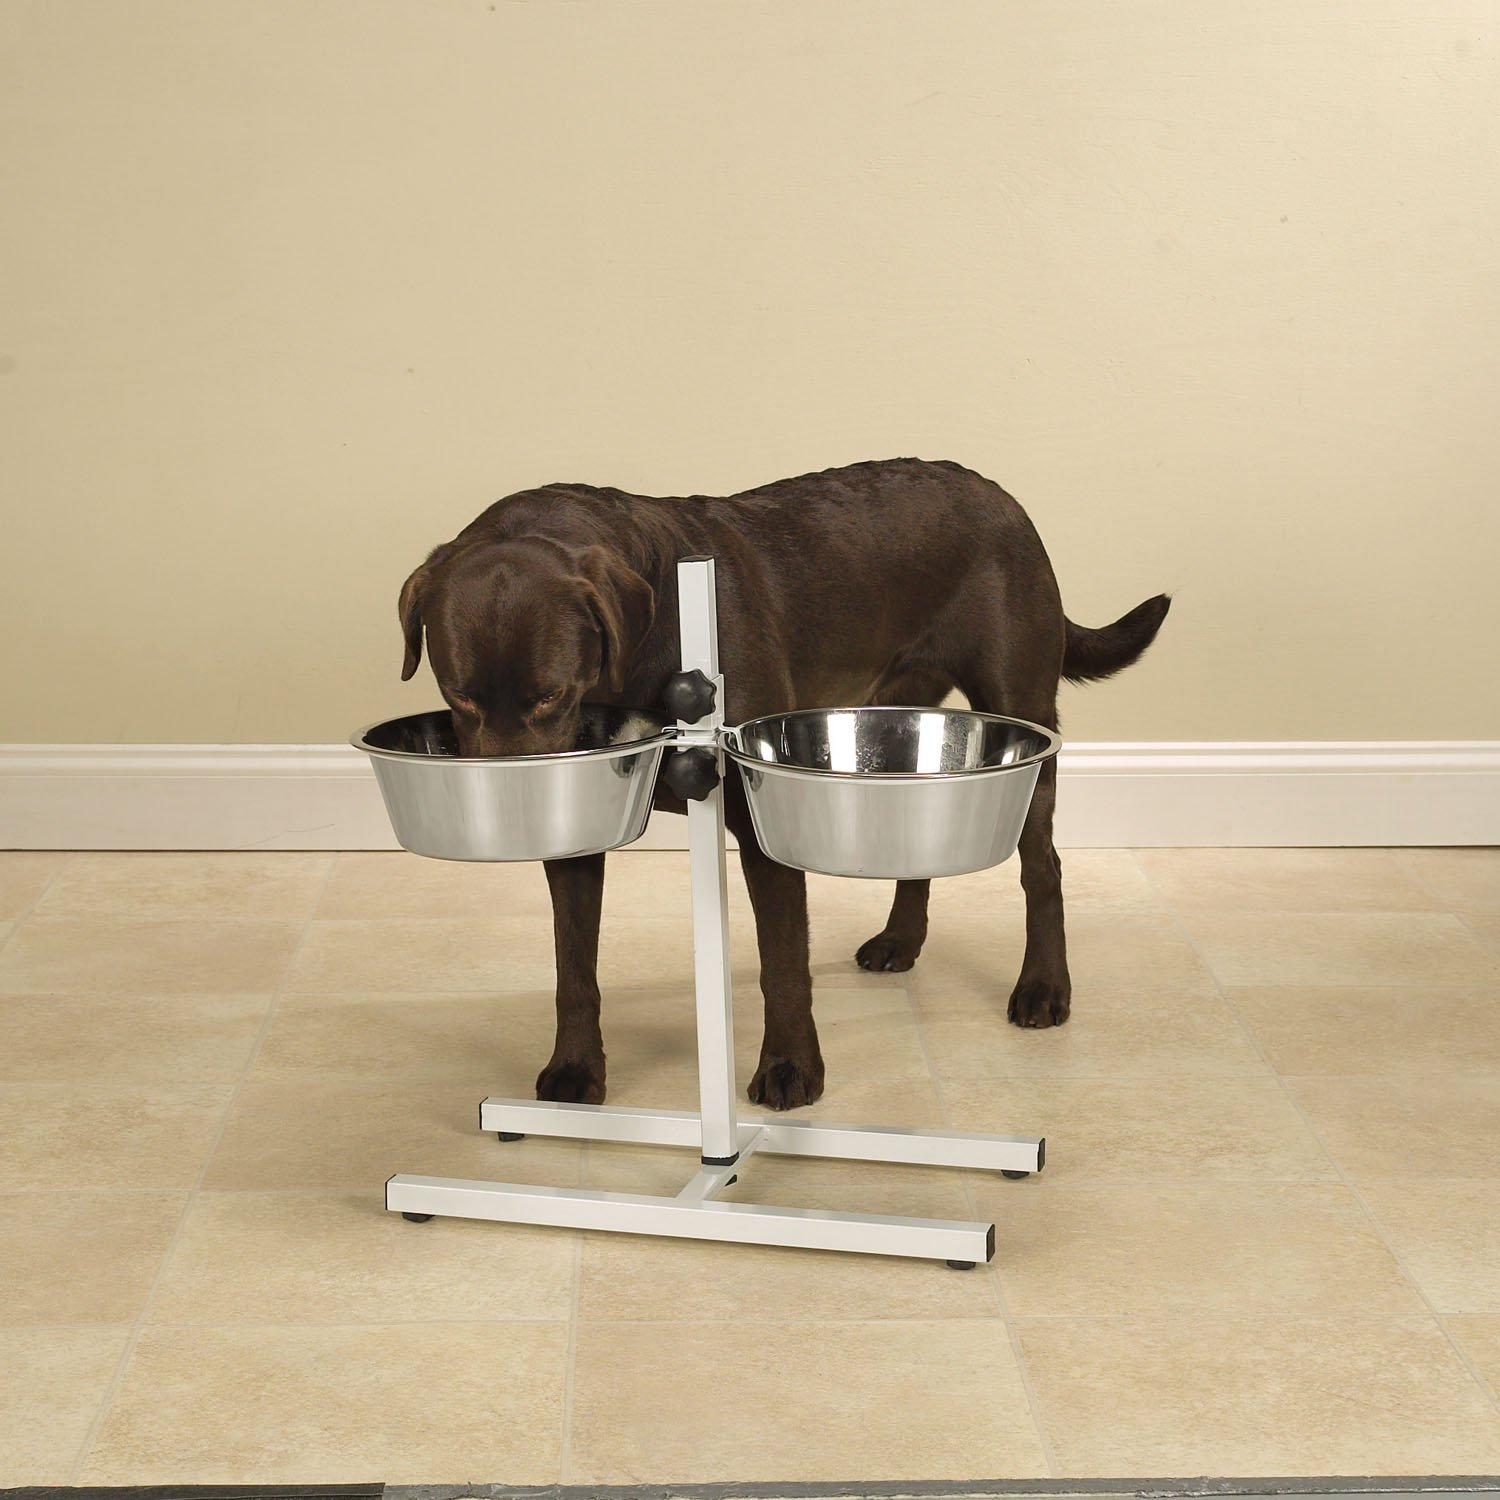 Pro Select Stainless Steel Adjustable Dog Diner Bowl with Two Pet Food Bowls by Pro Select (Image #3)